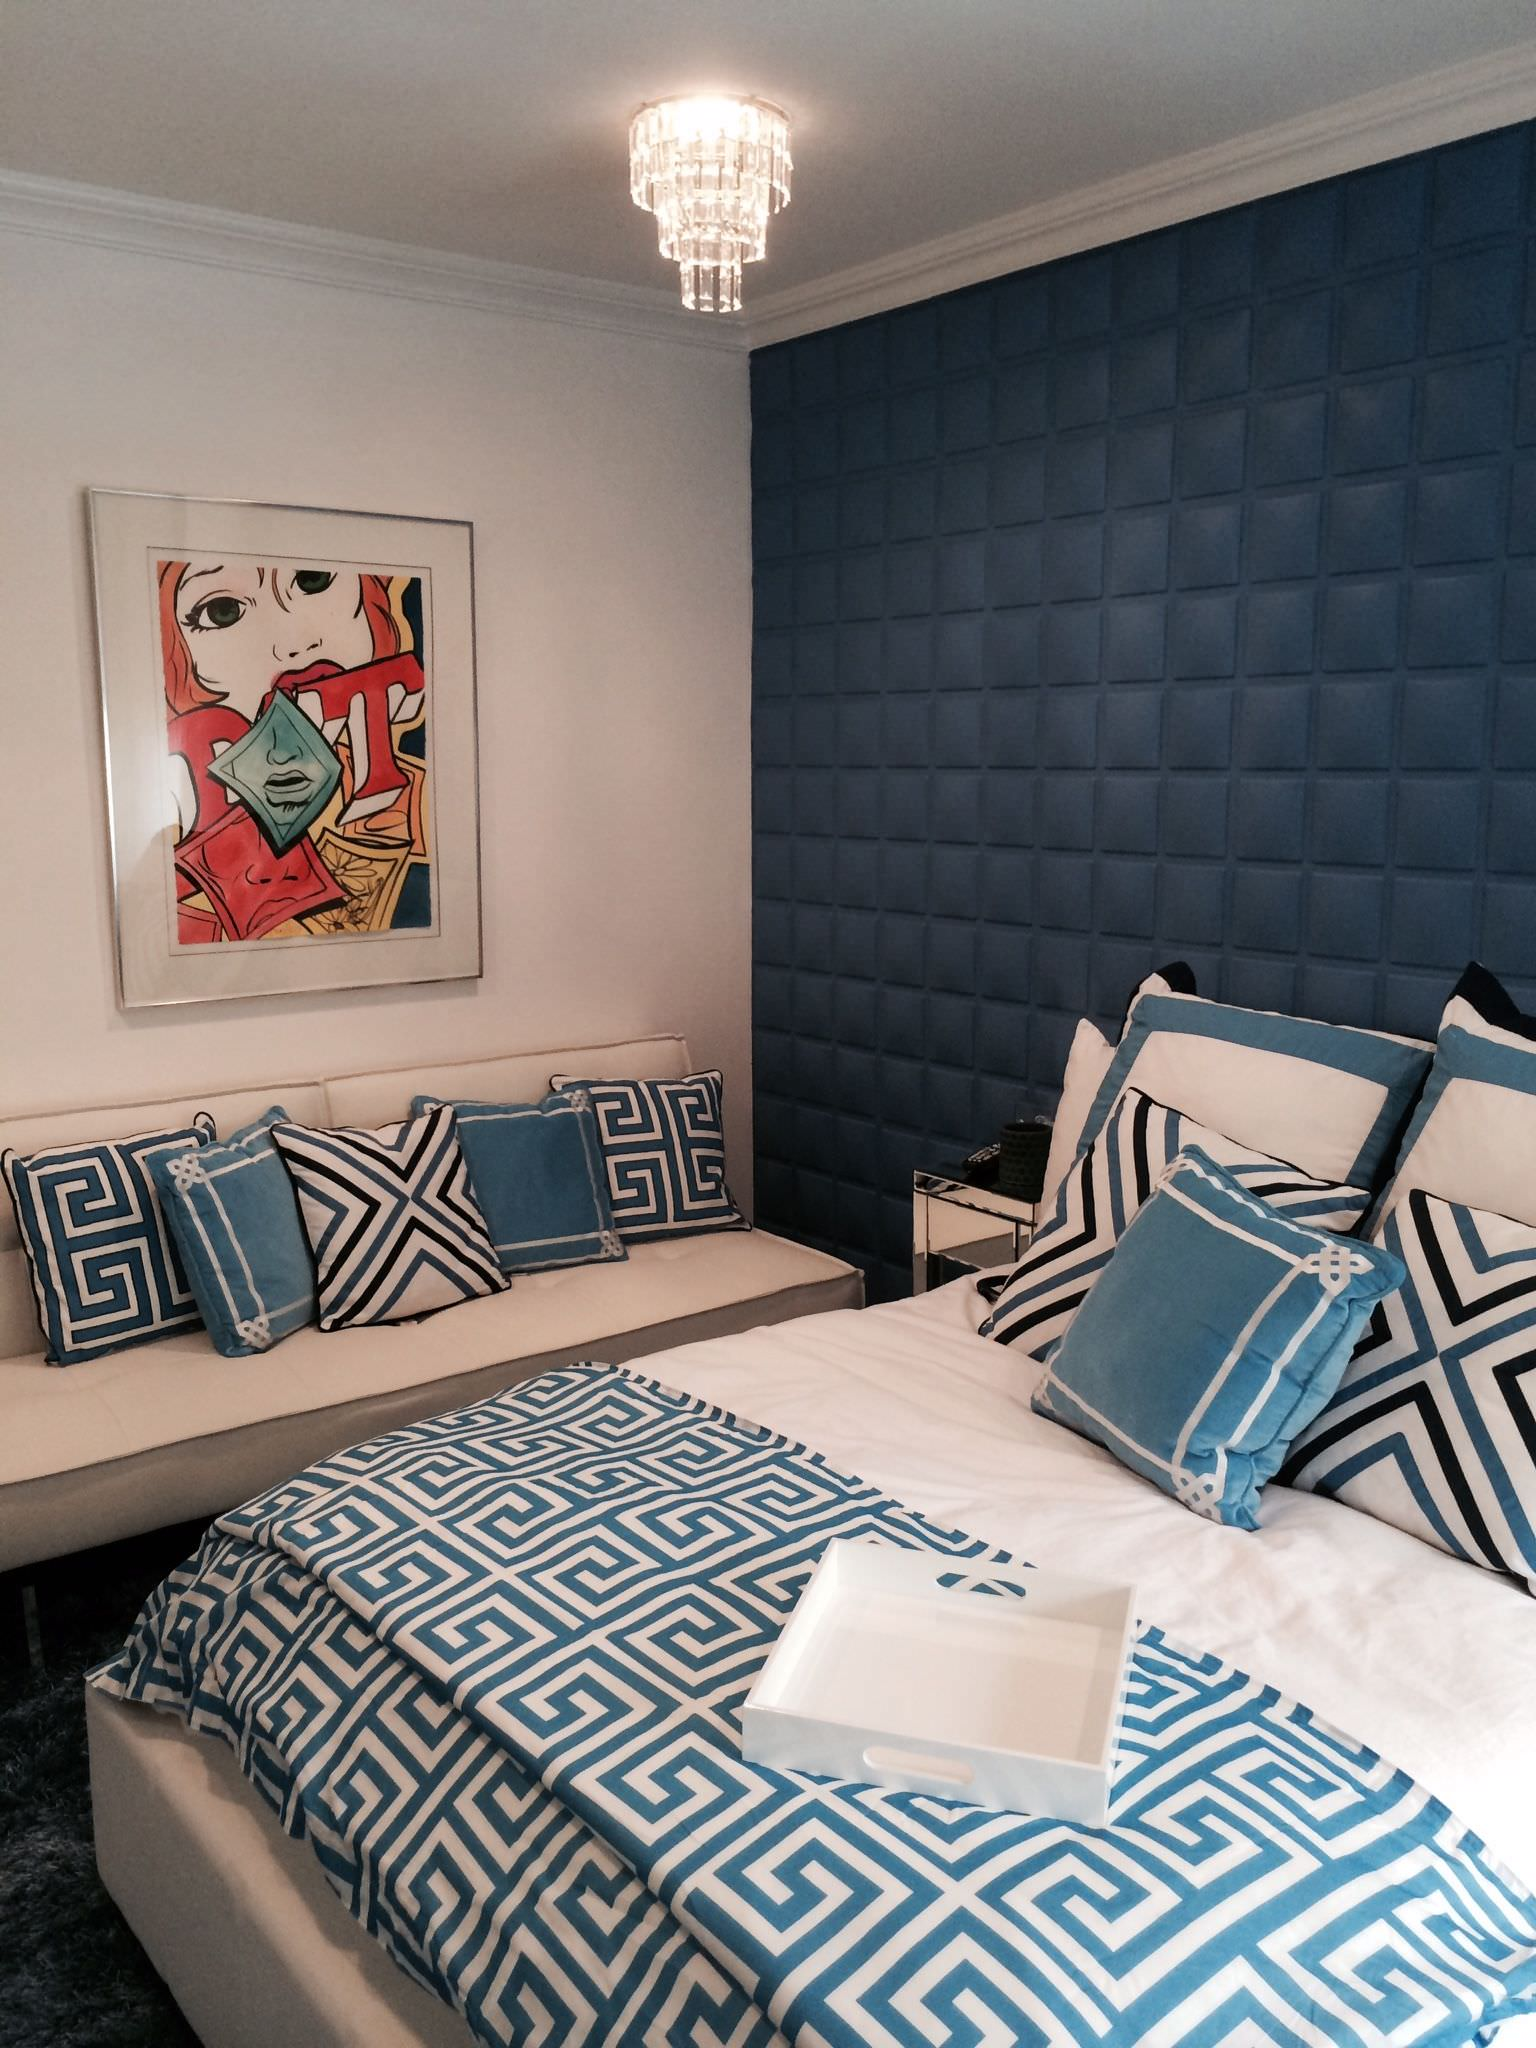 Small primary bedroom with matching color and pattern scheme